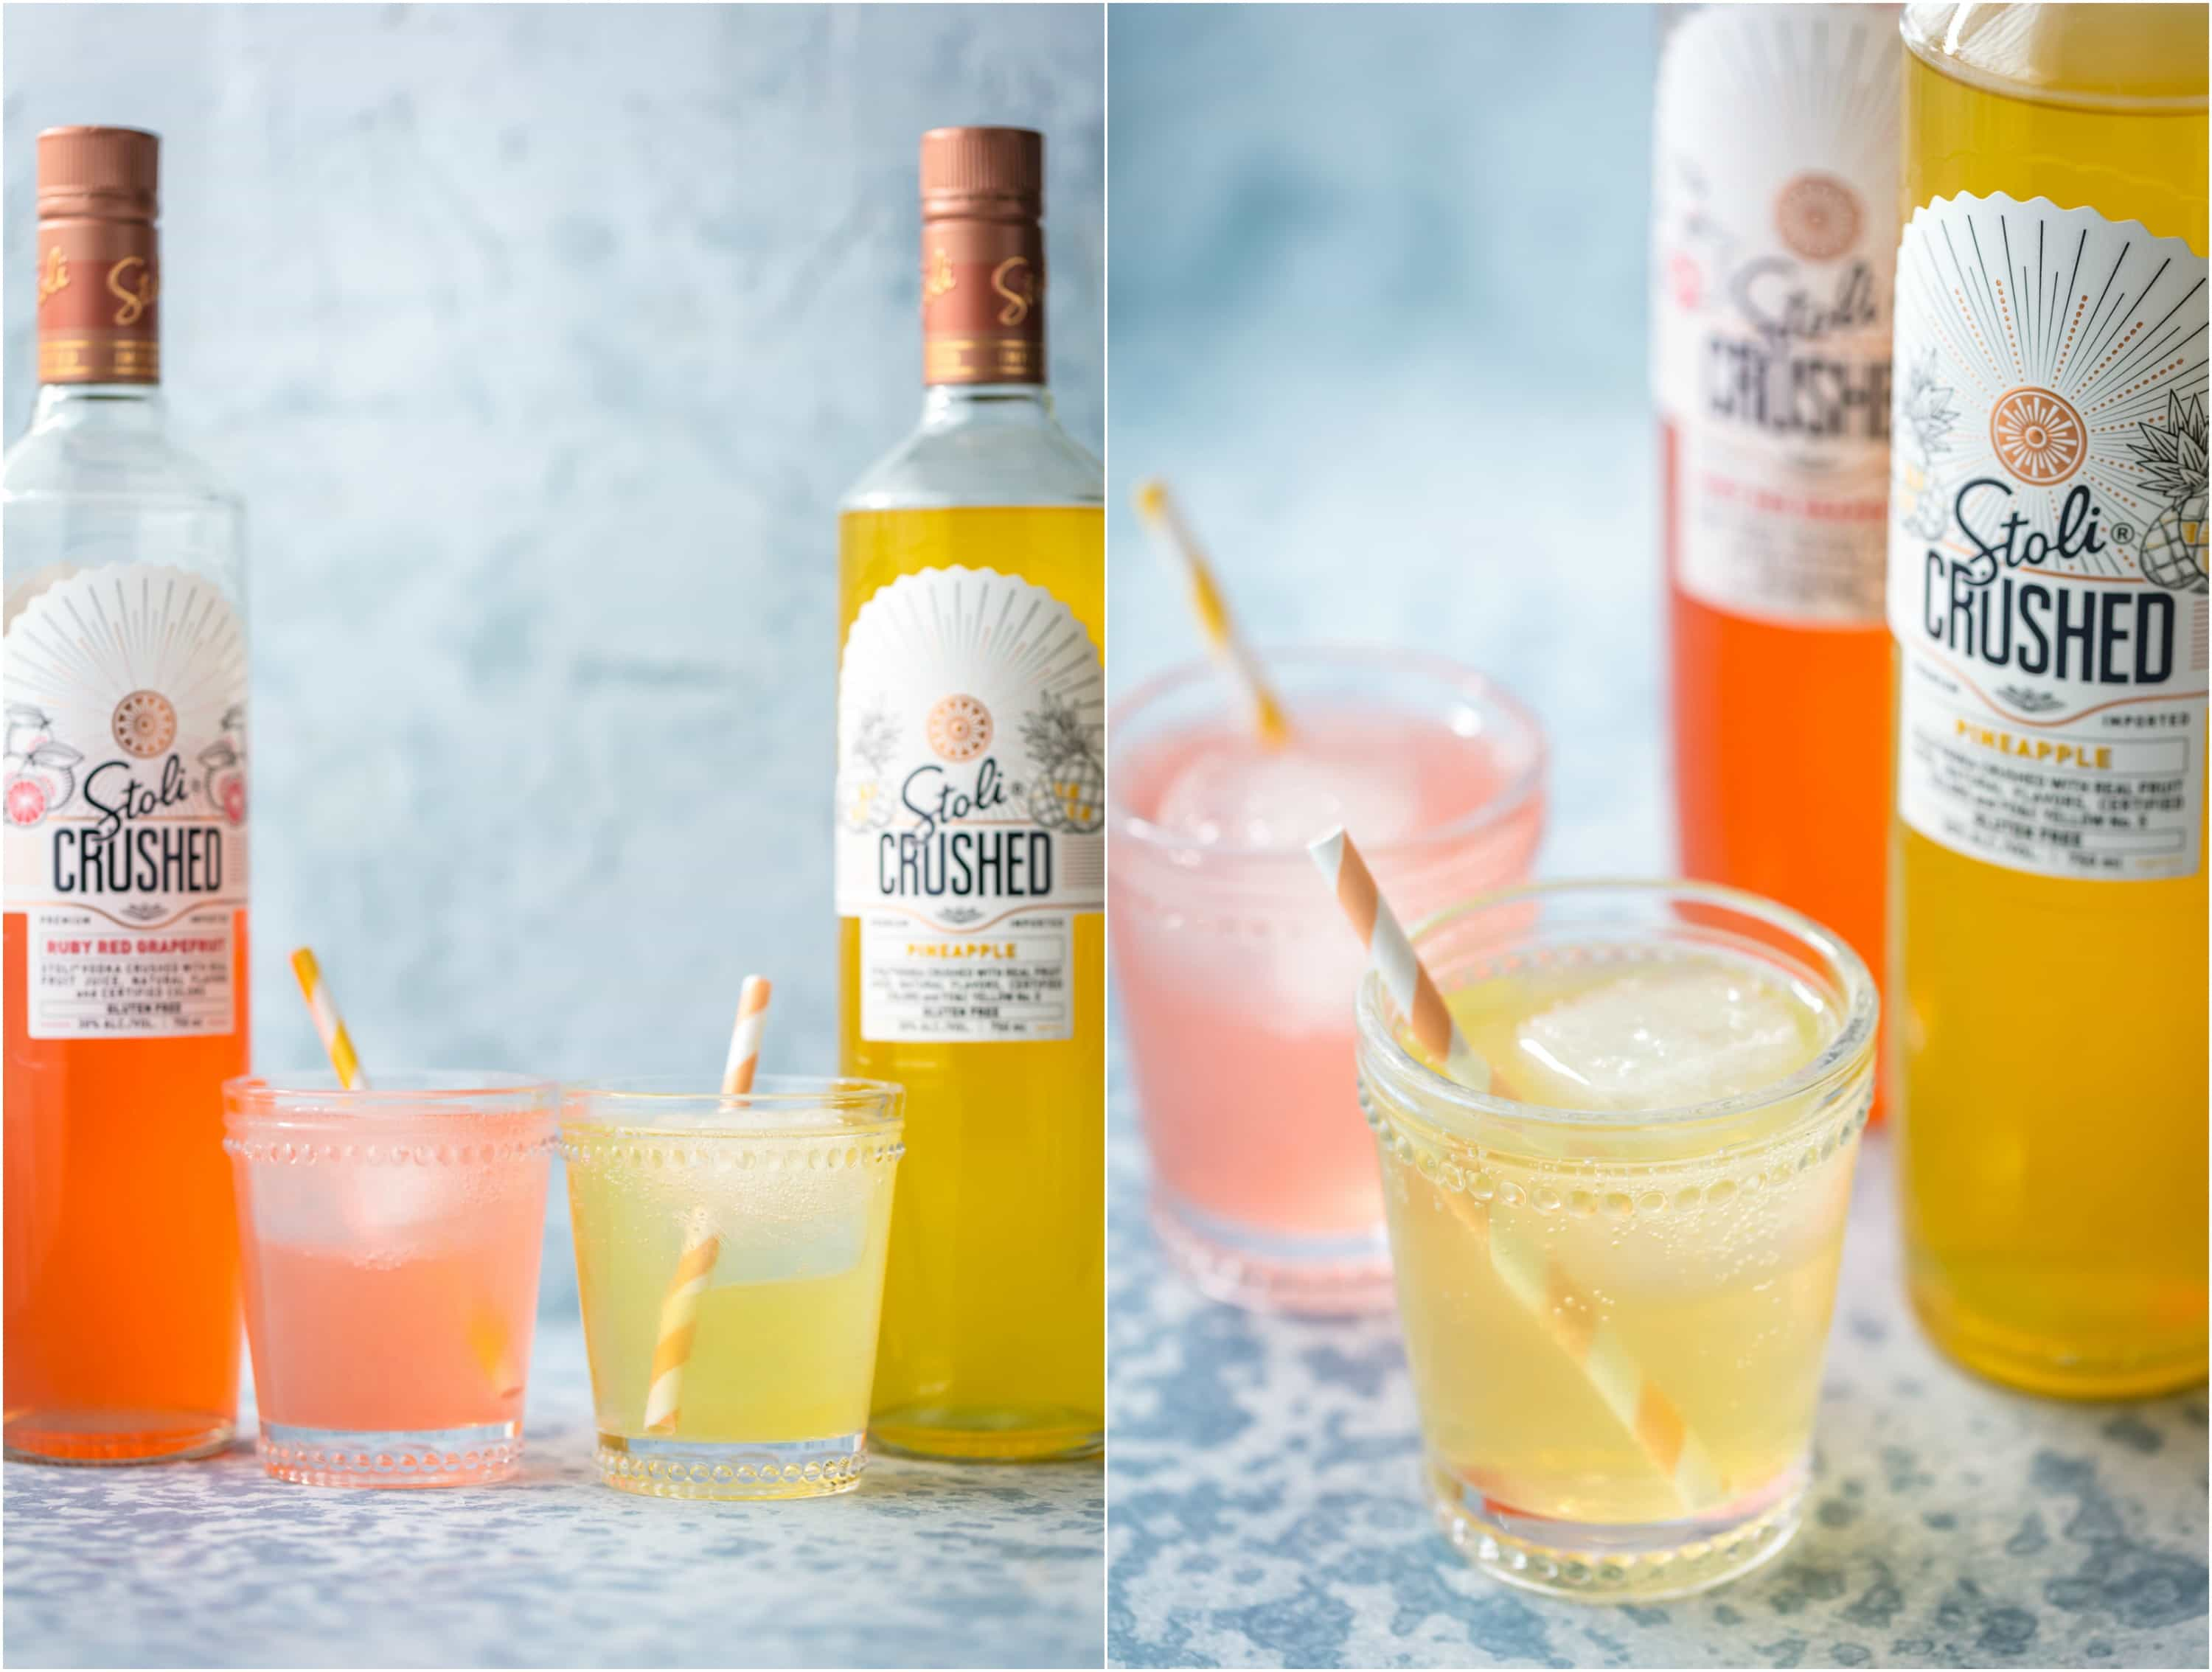 SALTY DOG SANGRIA is the ultimate refreshing Summer cocktail! Grapefruit vodka, juice, rose, club soda, and simple syrup come together in one refreshing and beautiful sip.